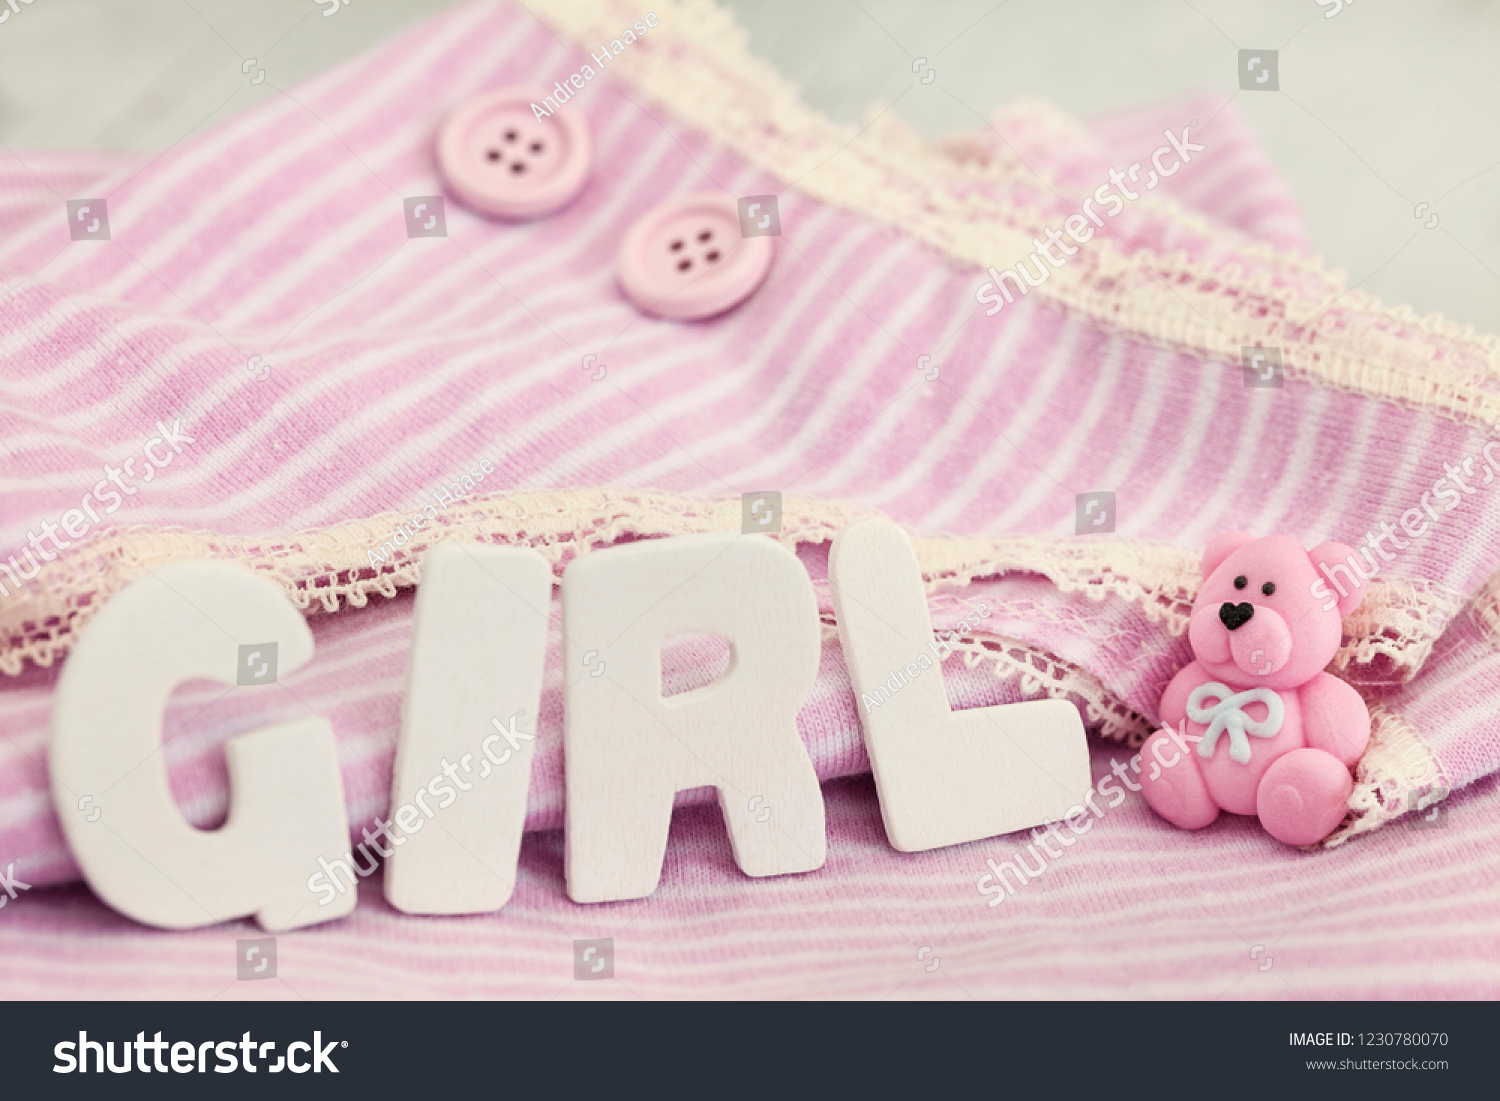 cute striped baby shirt in the background in soft pastel pink with word  girl for a